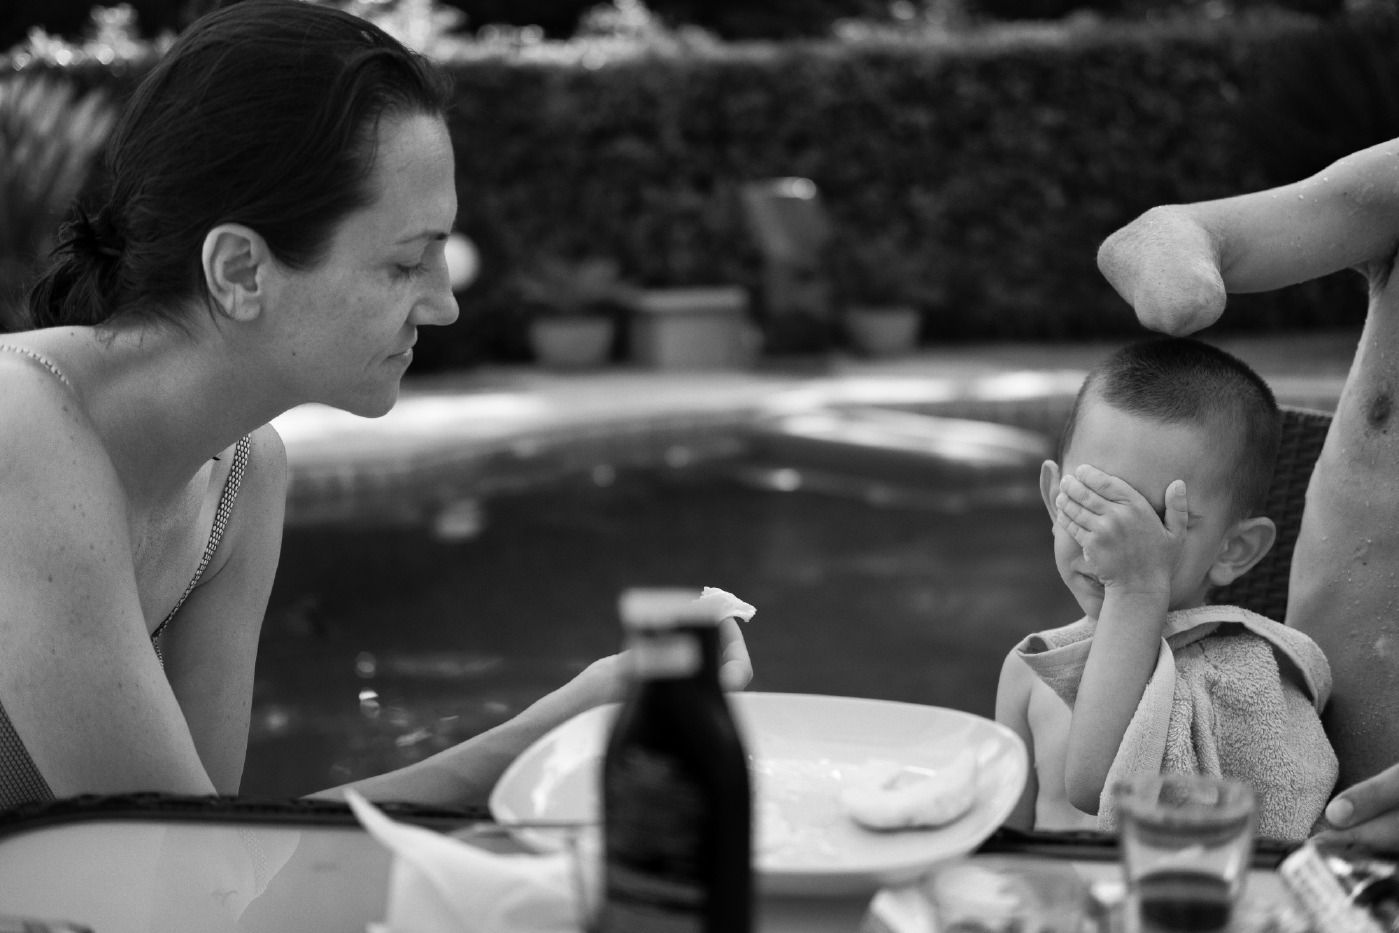 Naida feeds her 3-year-old son Alen who sits by the pool with his father Adis. The Smajic family travelled to Rome for the replacement of Adis' old prosthetic eye. Velletri, Italy 2016. © Matteo Bastianelli